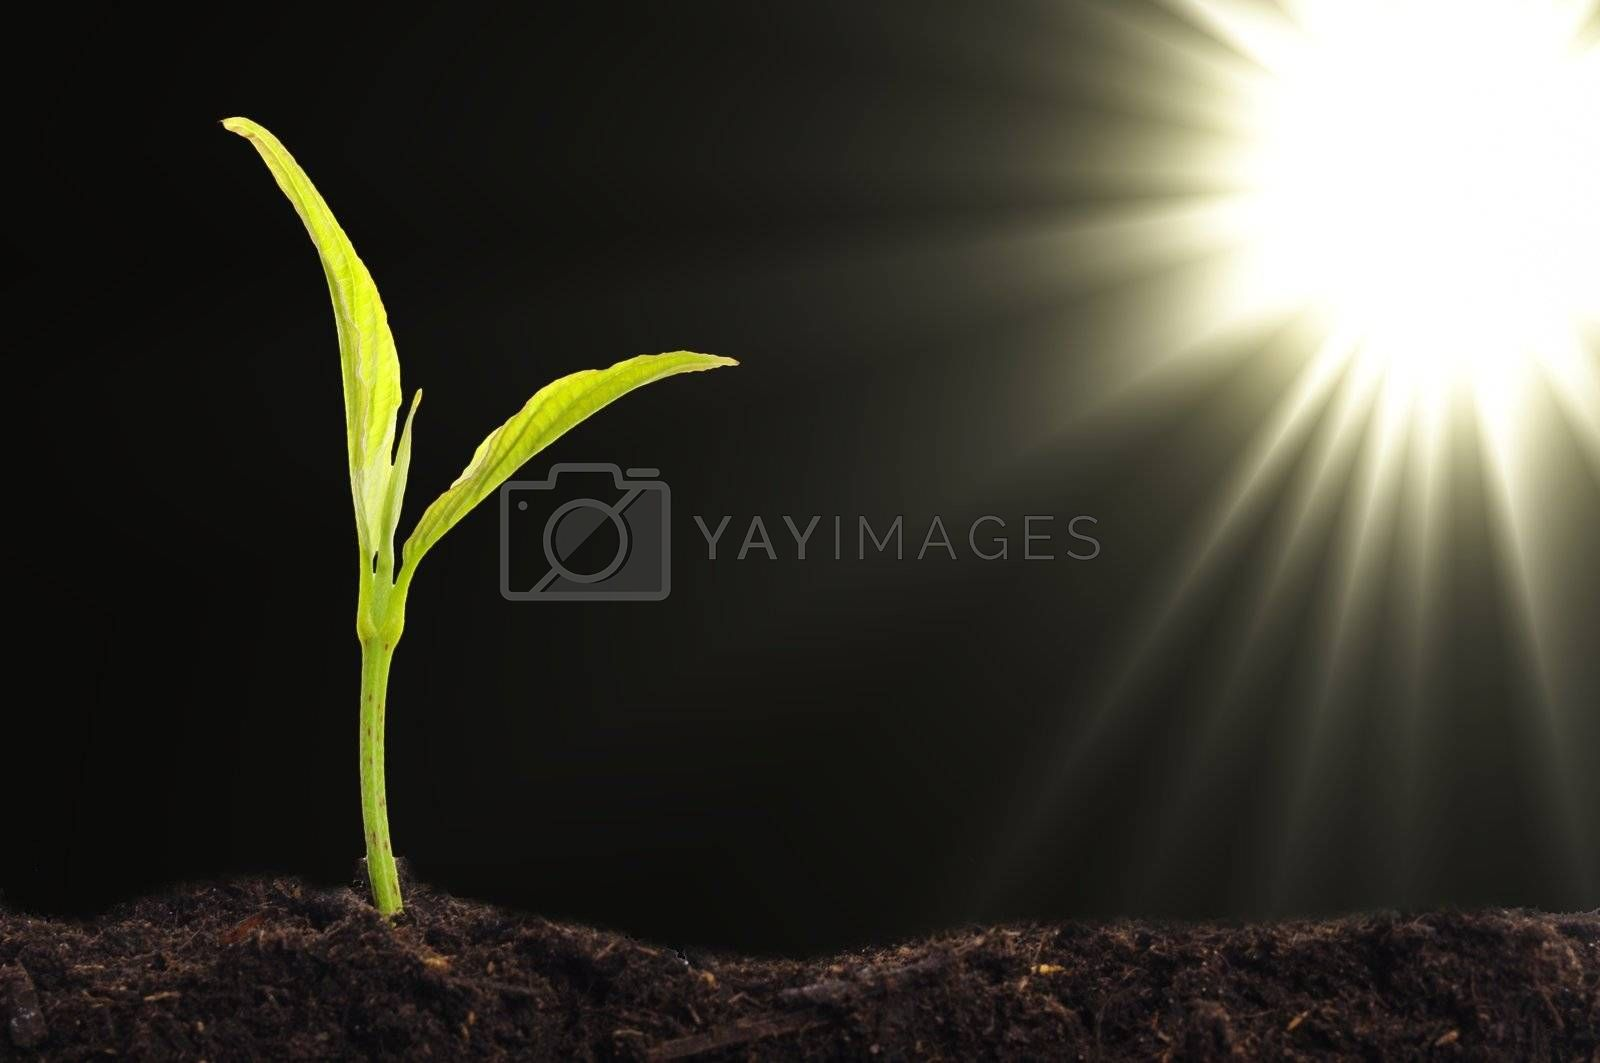 Royalty free image of small plant by gunnar3000